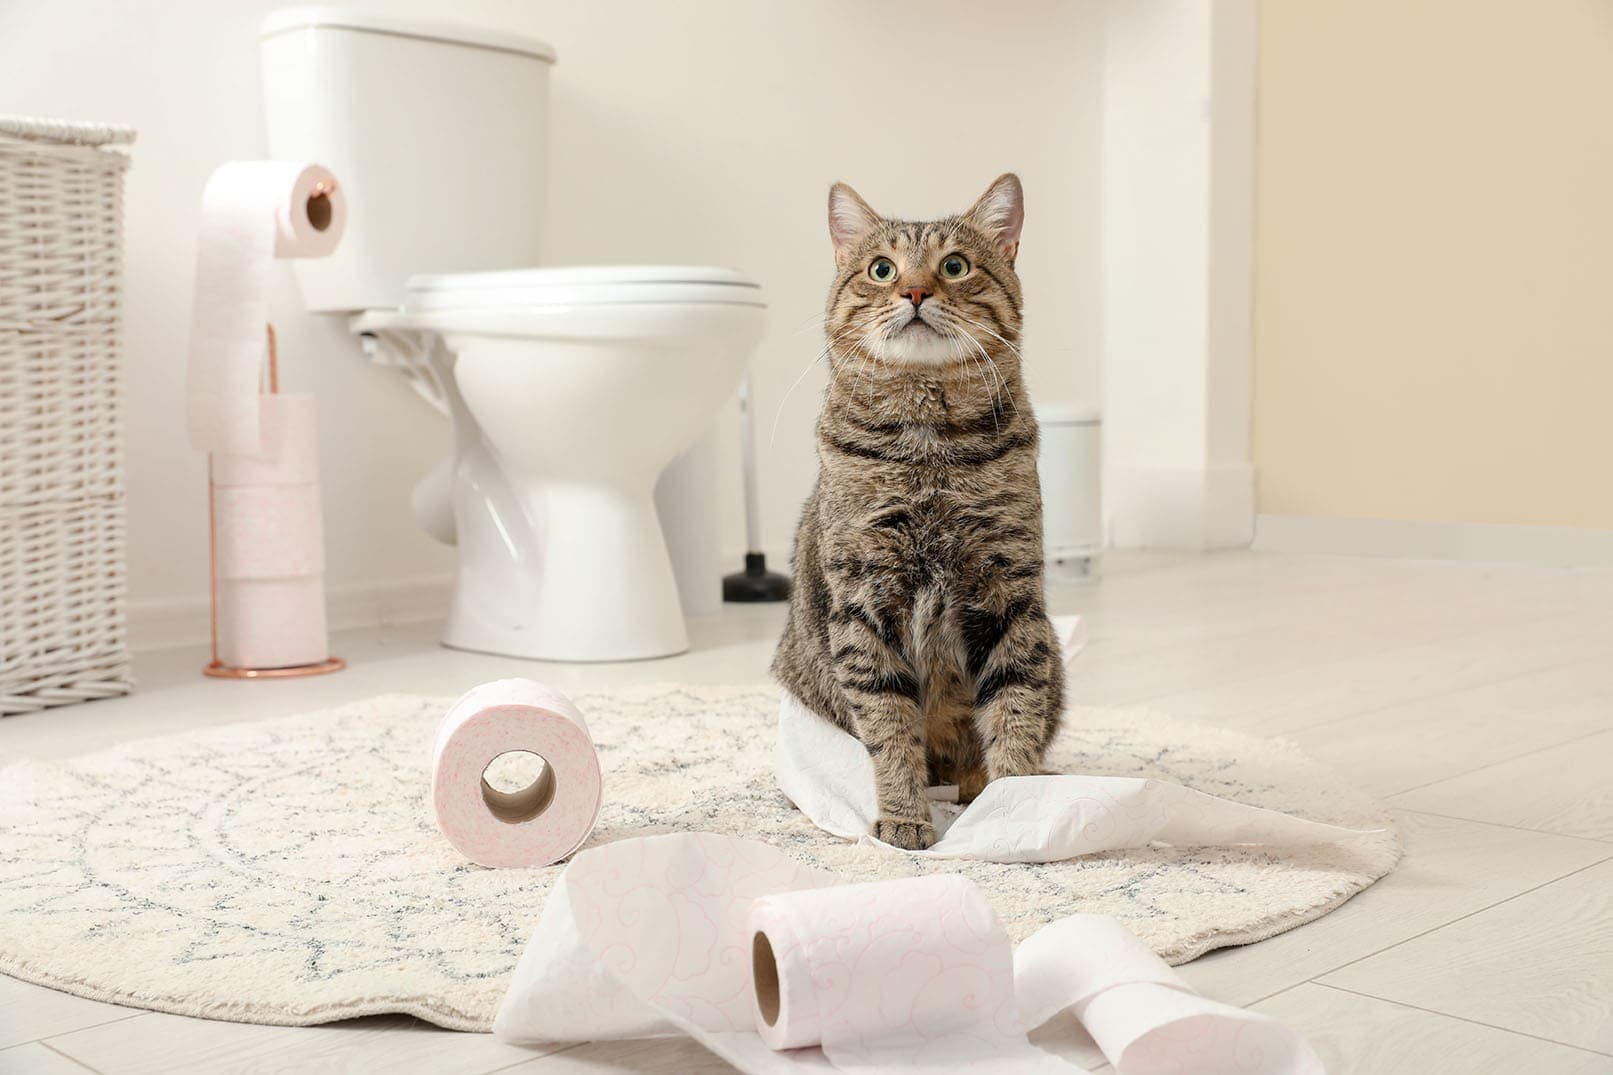 cat played with tissue rolls